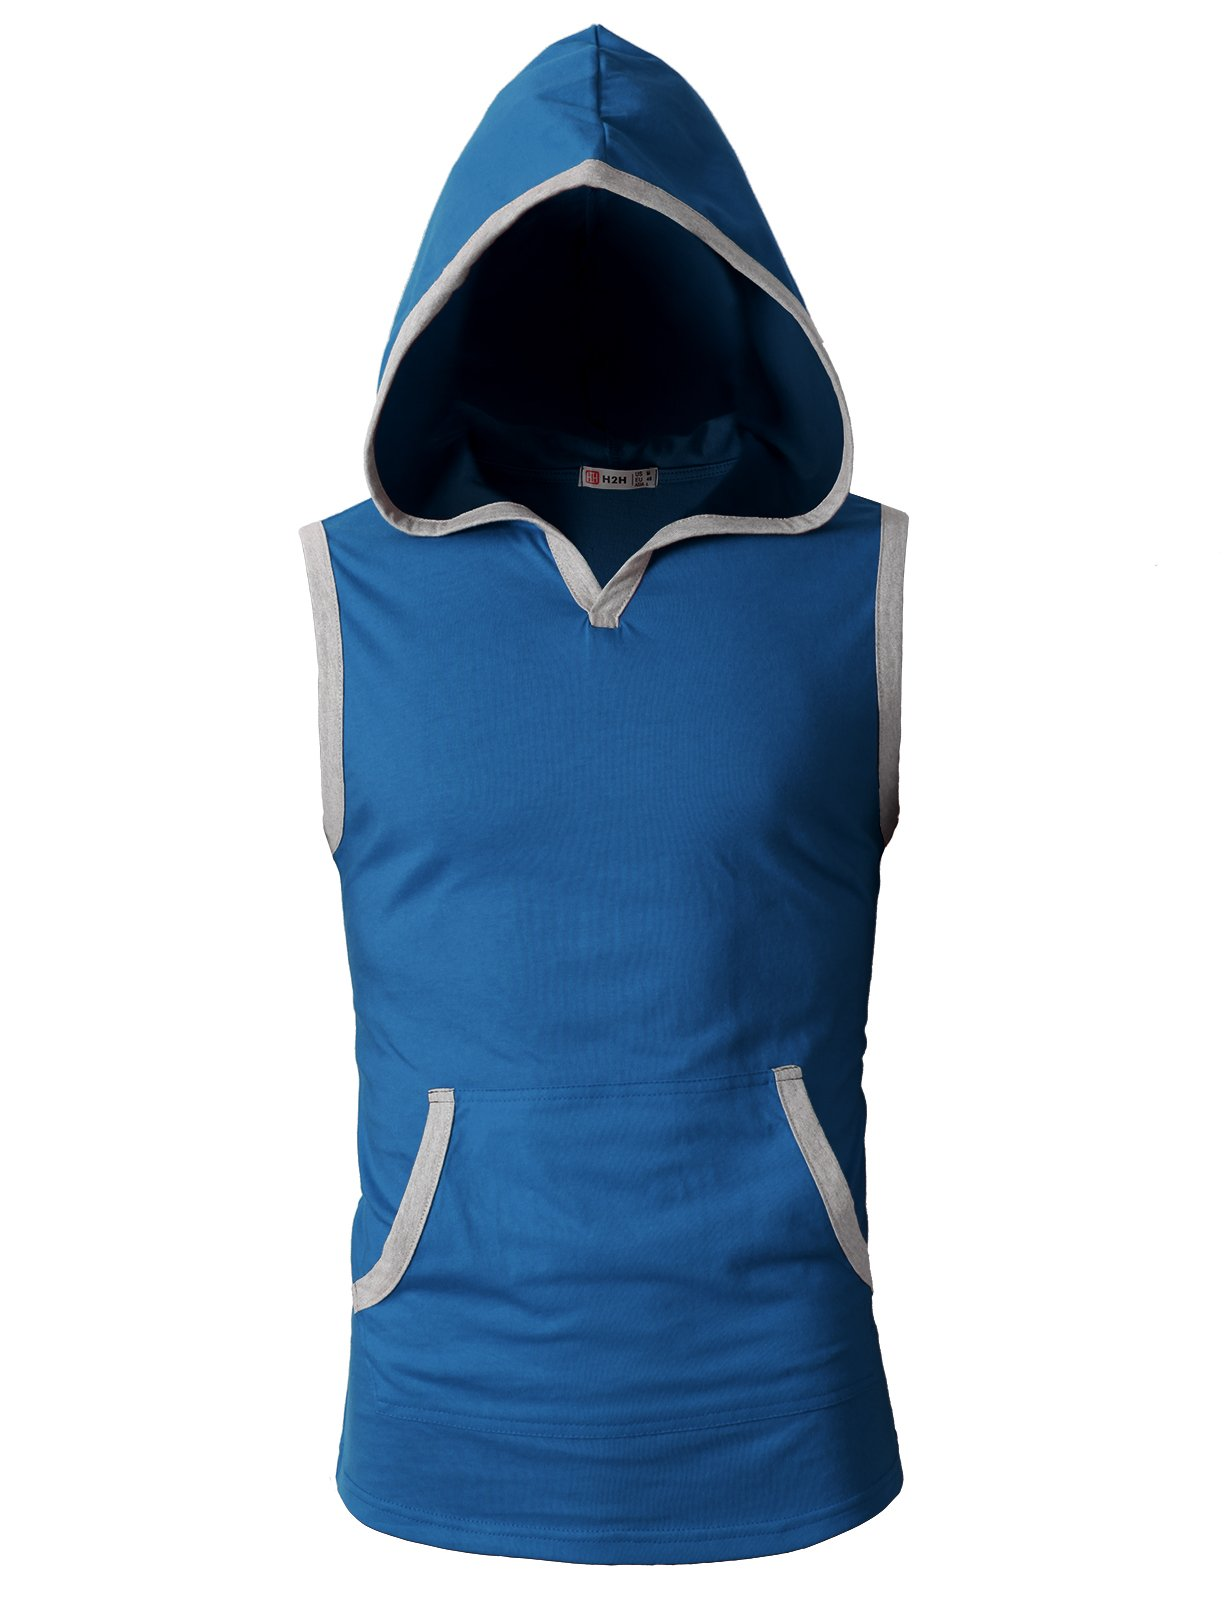 H2H Mens Athletic Workout Shirt Weightlifting Bodybuilding Stringer Gym Sleeveless Hoodie Tank Top Blue US S/Asia M (CMTTK015)